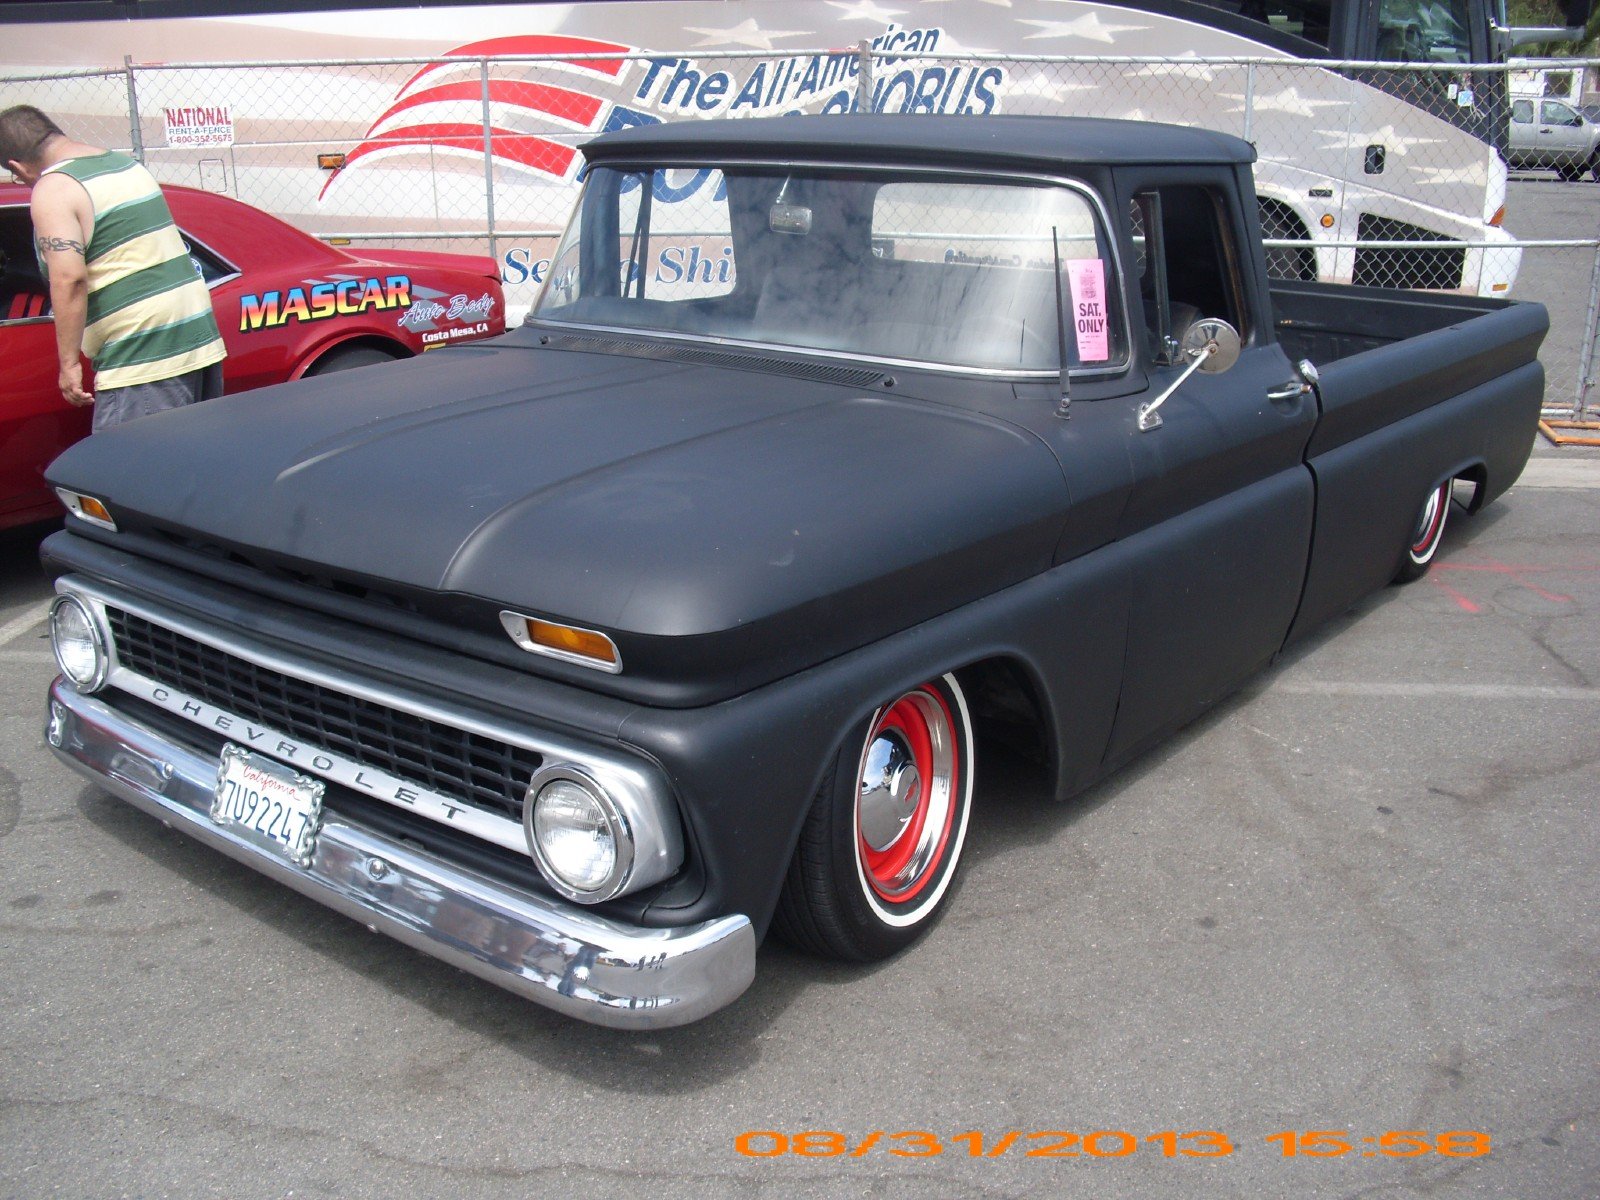 Wallpaper OLD SKOOL CHEVY TRUCK Chevrolet Show Truck Classic Cars 1600x1200